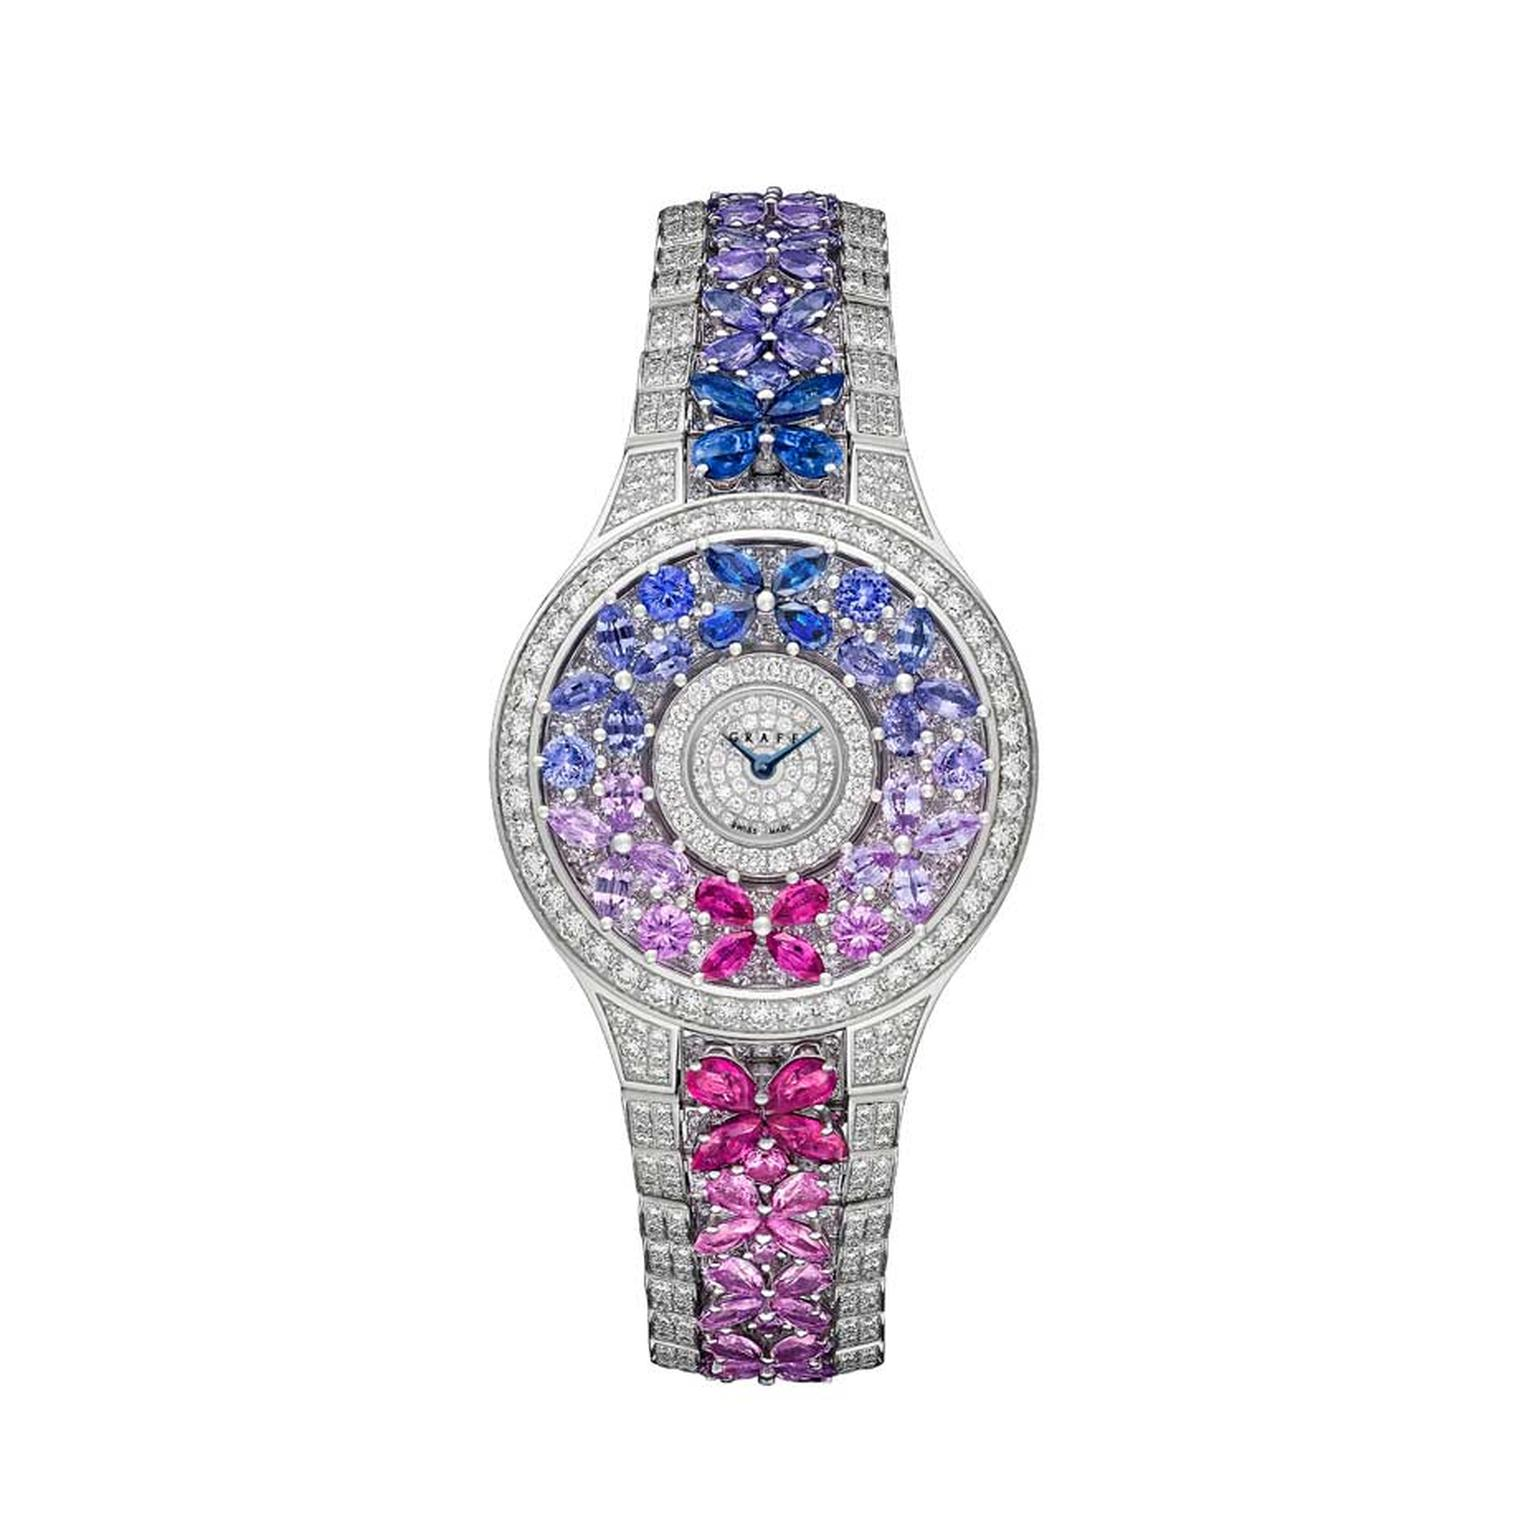 Graff Multi-Coloured Butterfly watch with diamonds, sapphires and rubies.